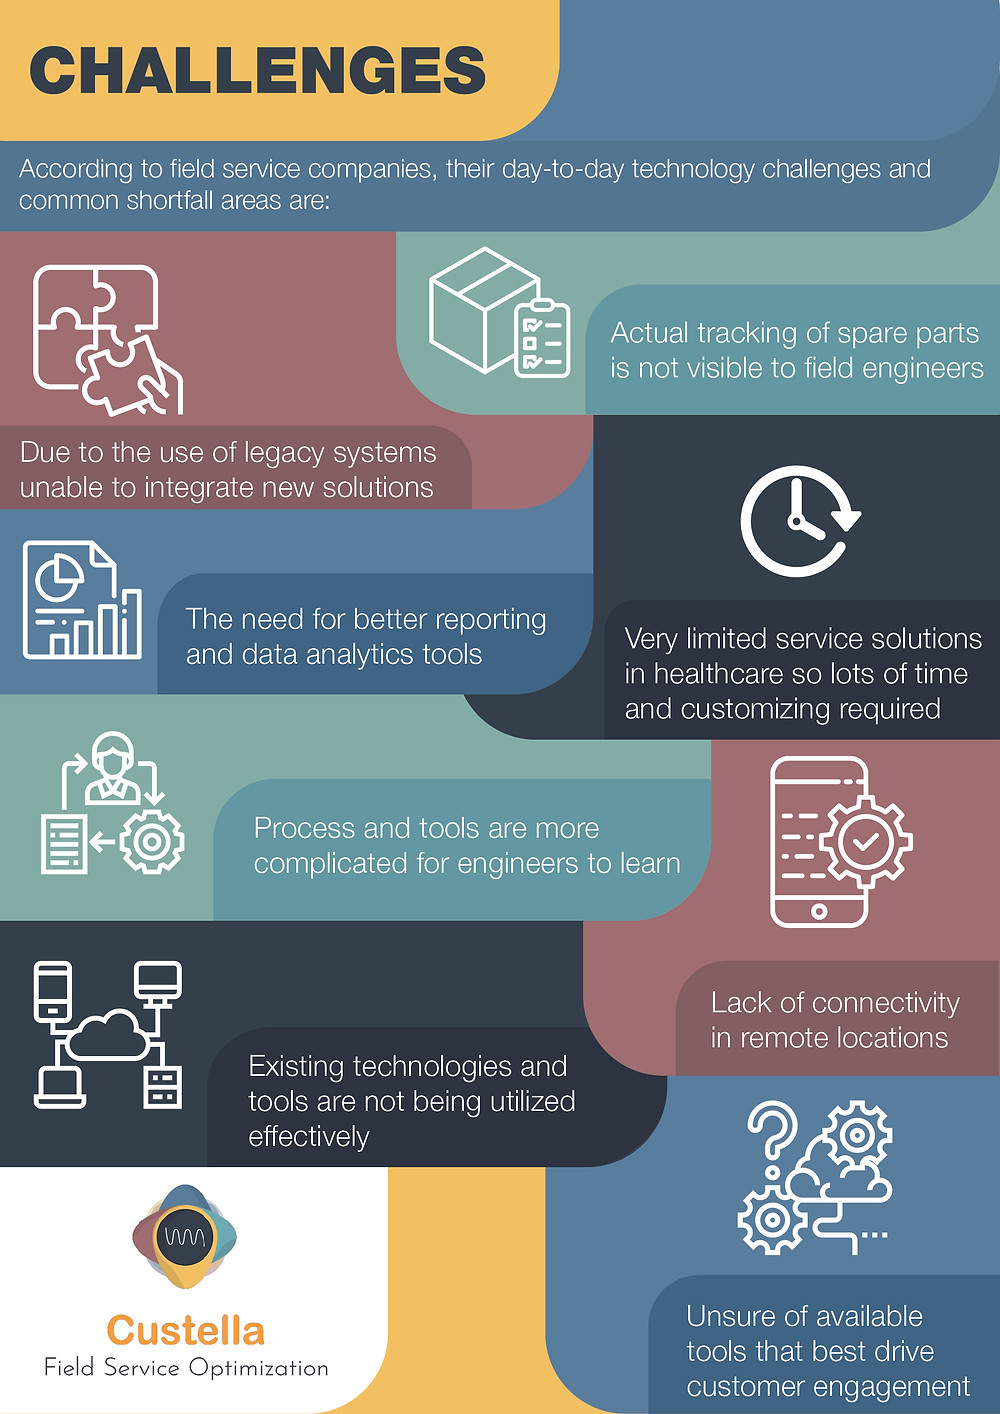 Custella Infographic: challenges faced by field service companies